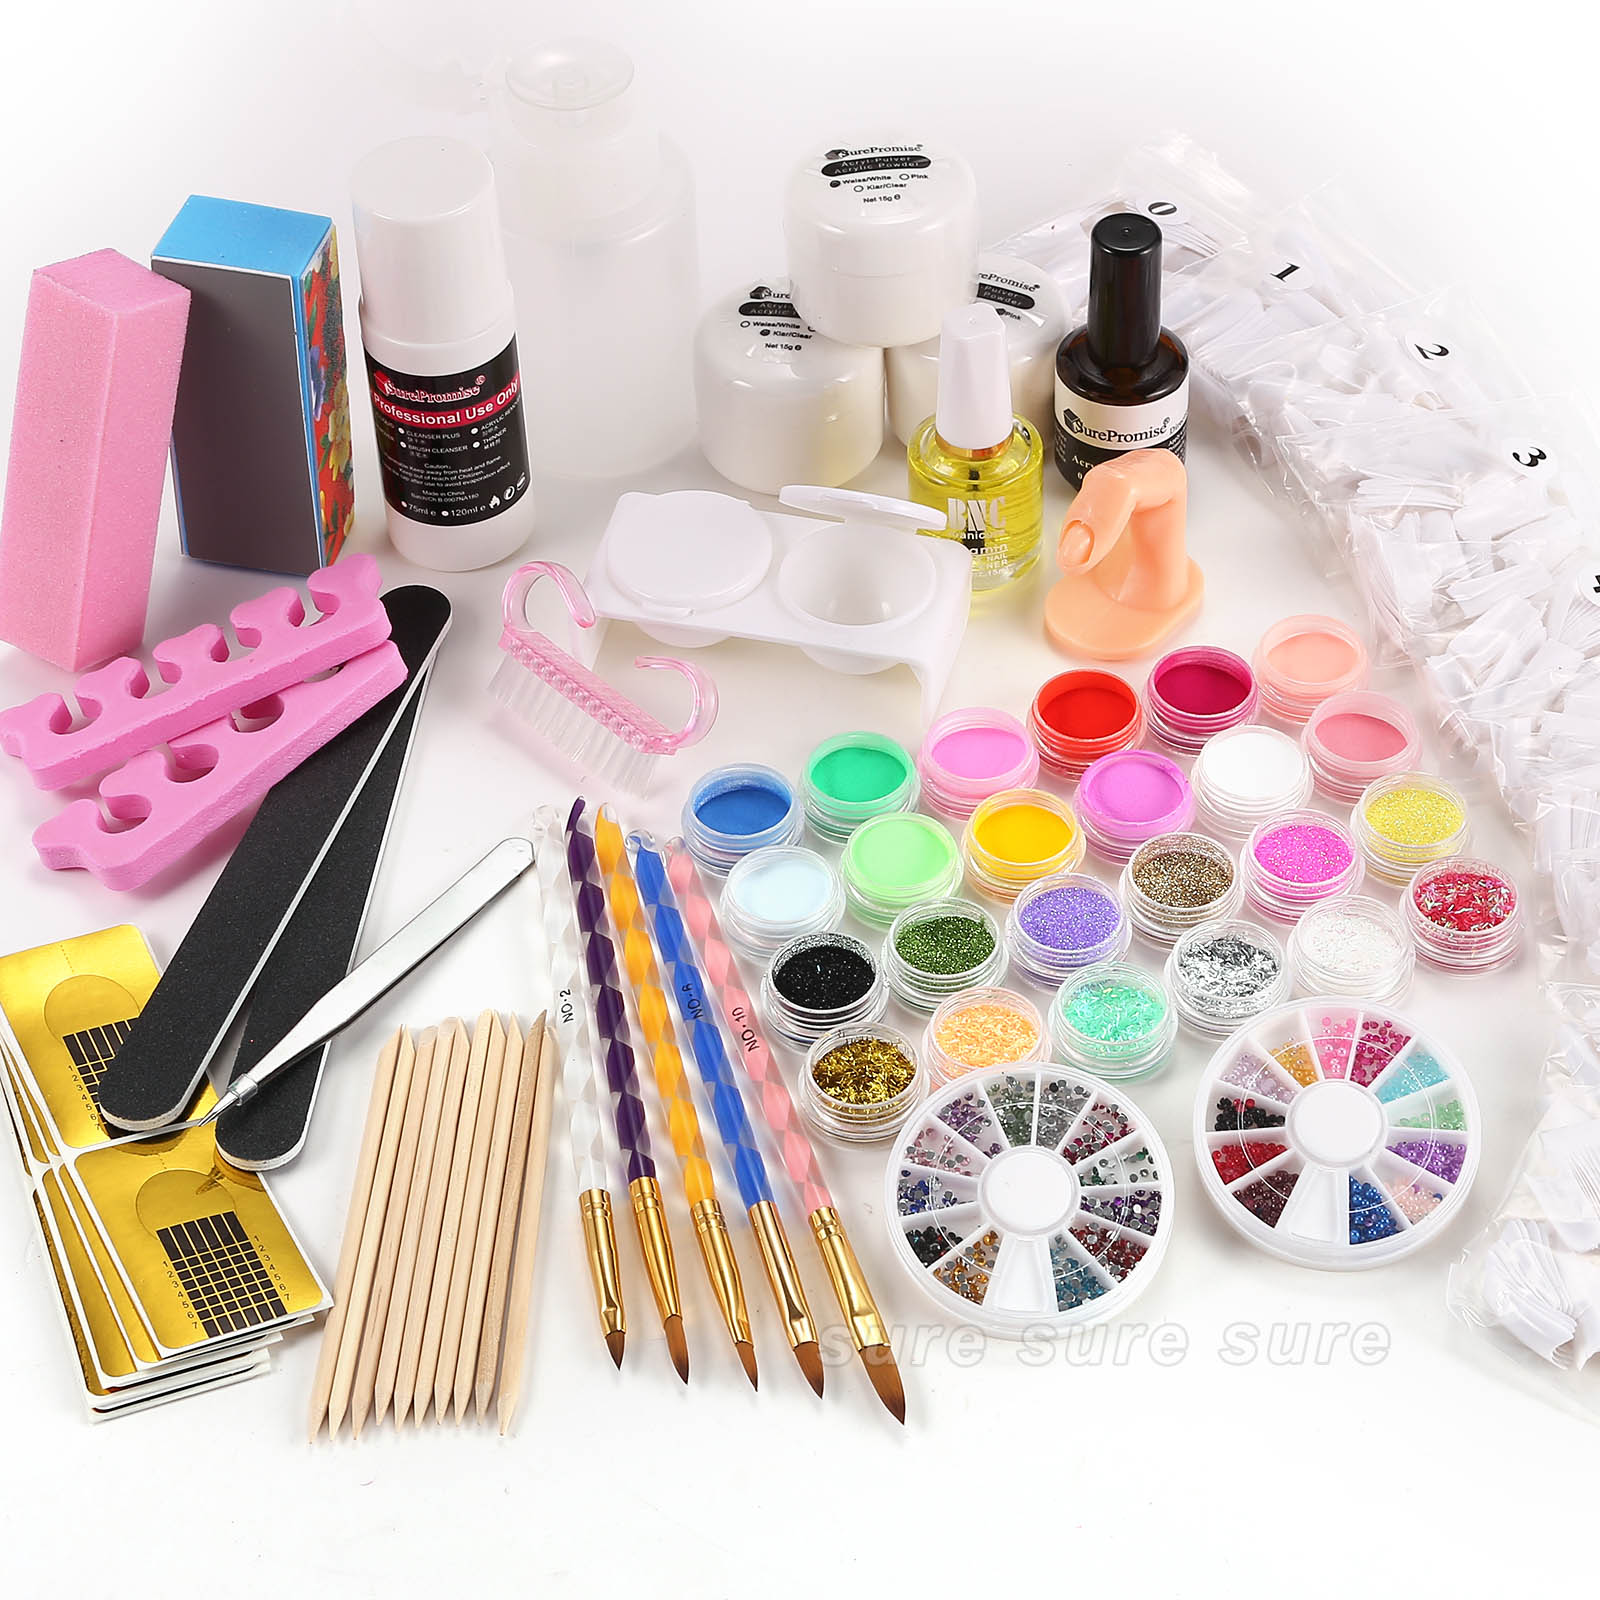 acryl starter set pulver liquid primer nageltips stra stein glitter pinsel feile ebay. Black Bedroom Furniture Sets. Home Design Ideas